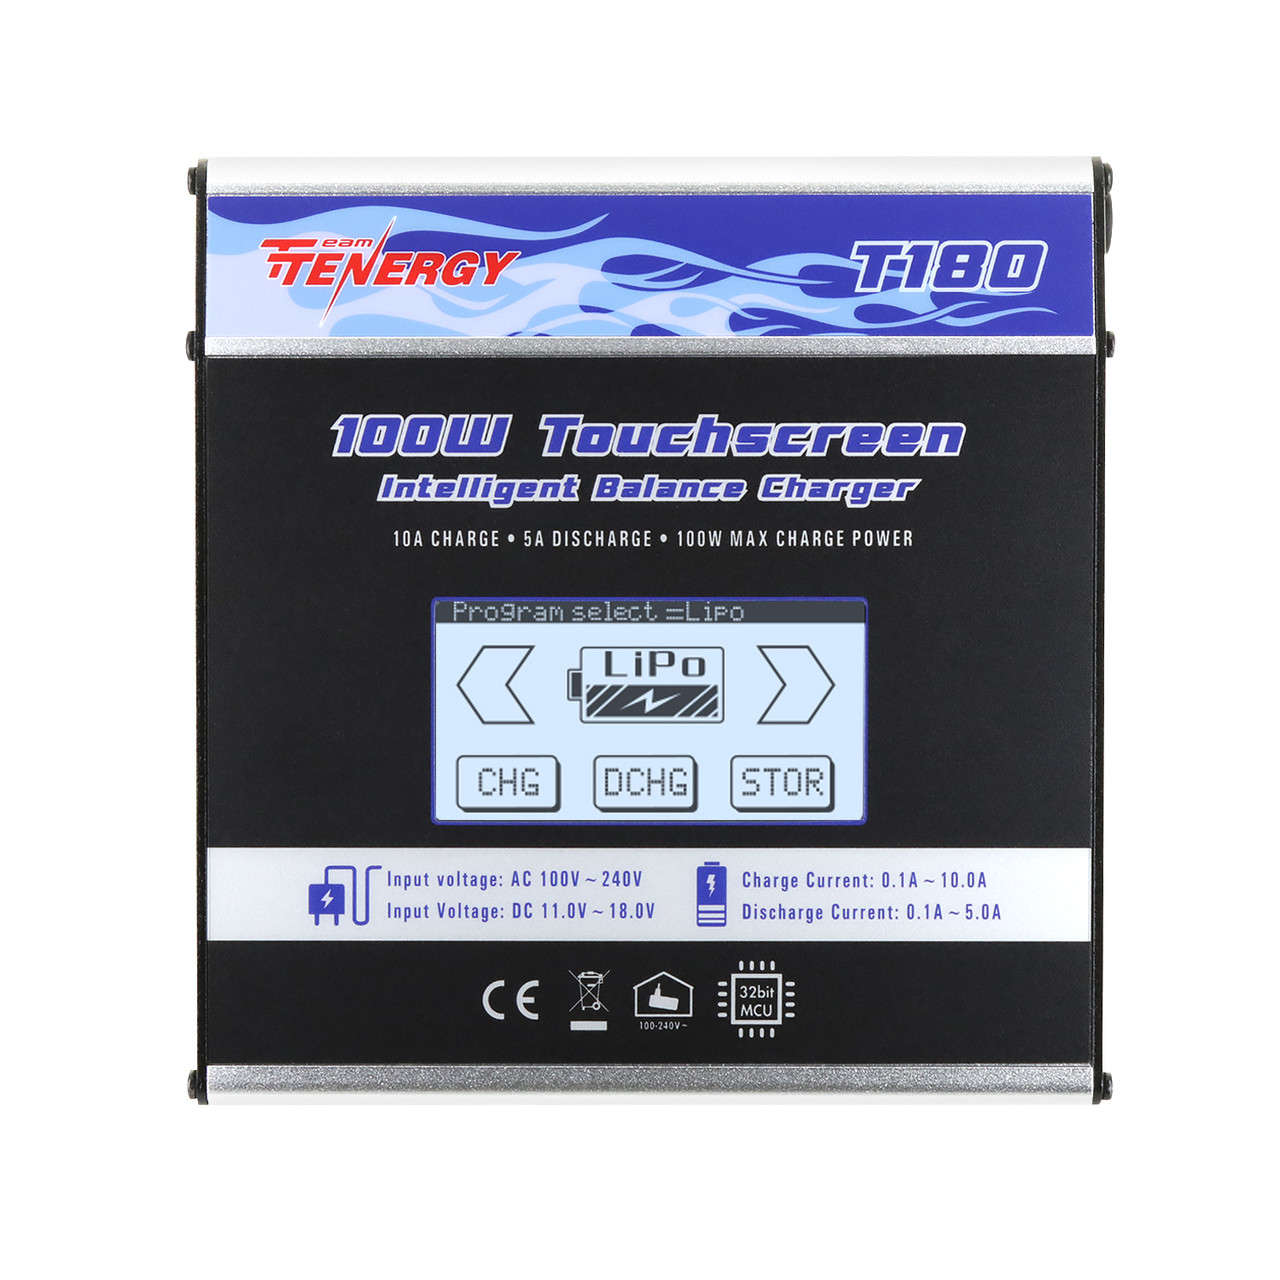 Tenergy T180 100W Balance charger with touch screen, metal housing